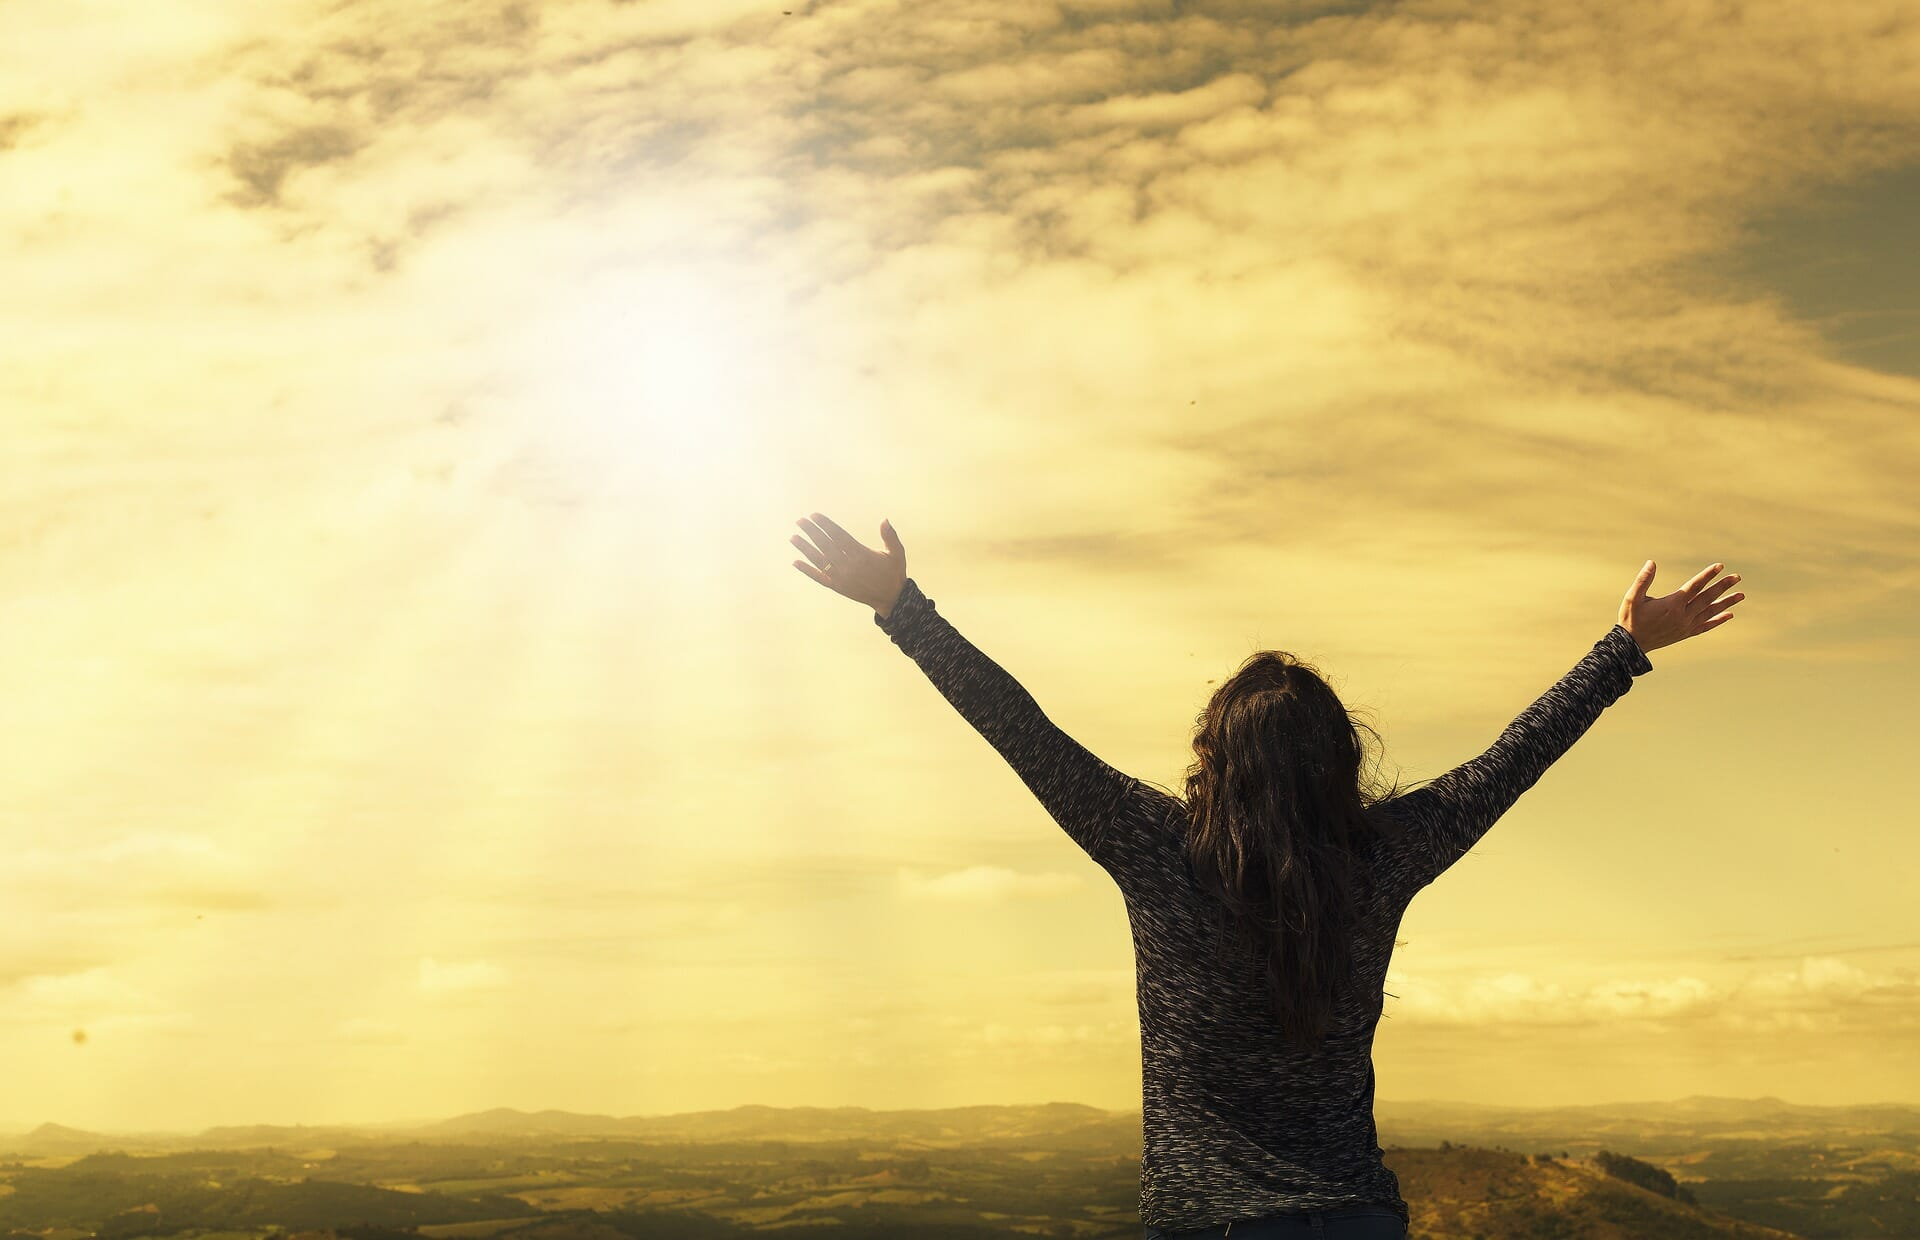 Person holding their arms up in the air and looking towards a sun filled sky.